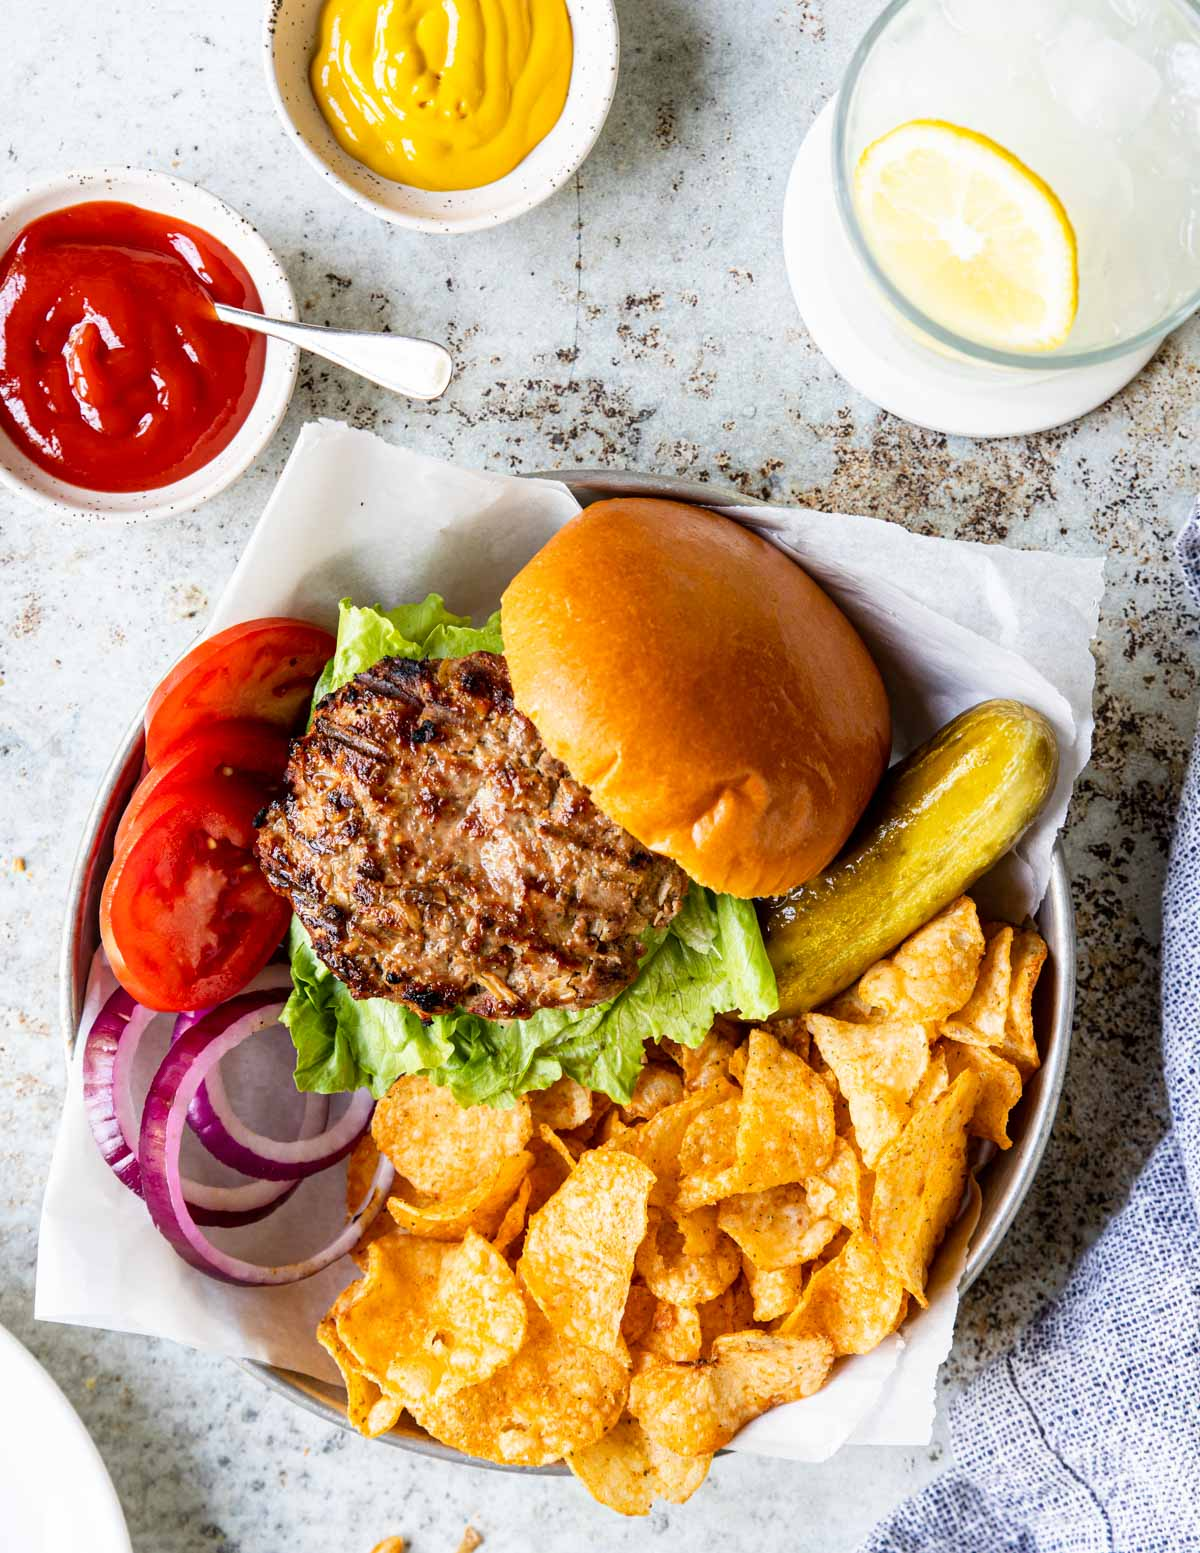 grilled turkey burgers with chips, pickles and lemonade